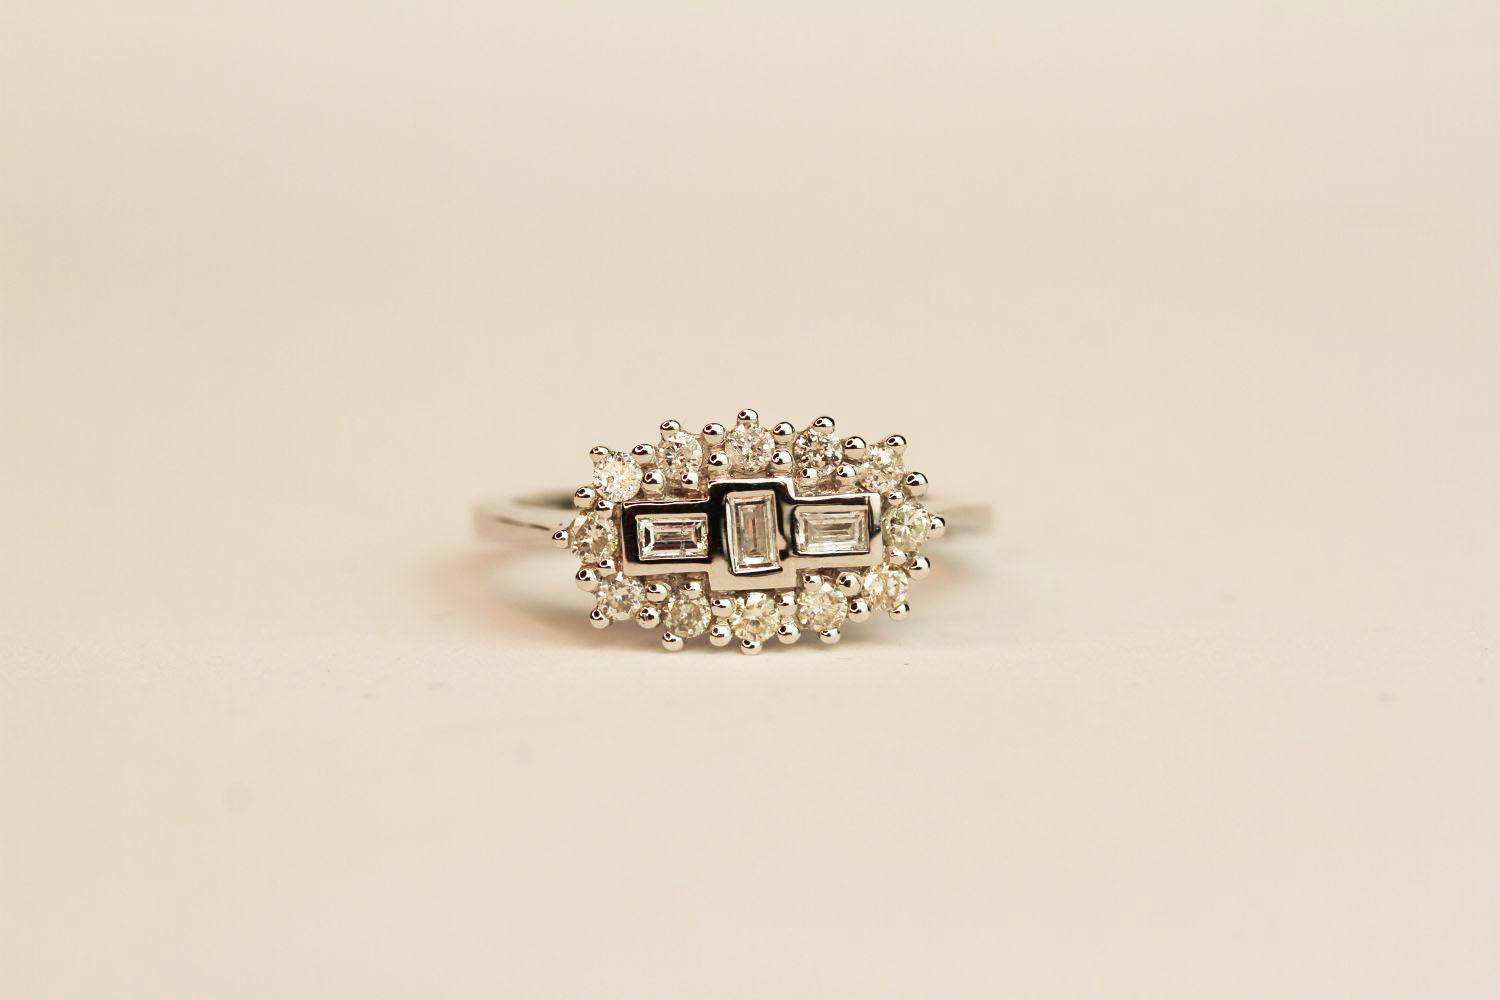 18ct white gold diamond fancy cluster ring. Baguette and round brilliant cut diamonds 0.50 ct,